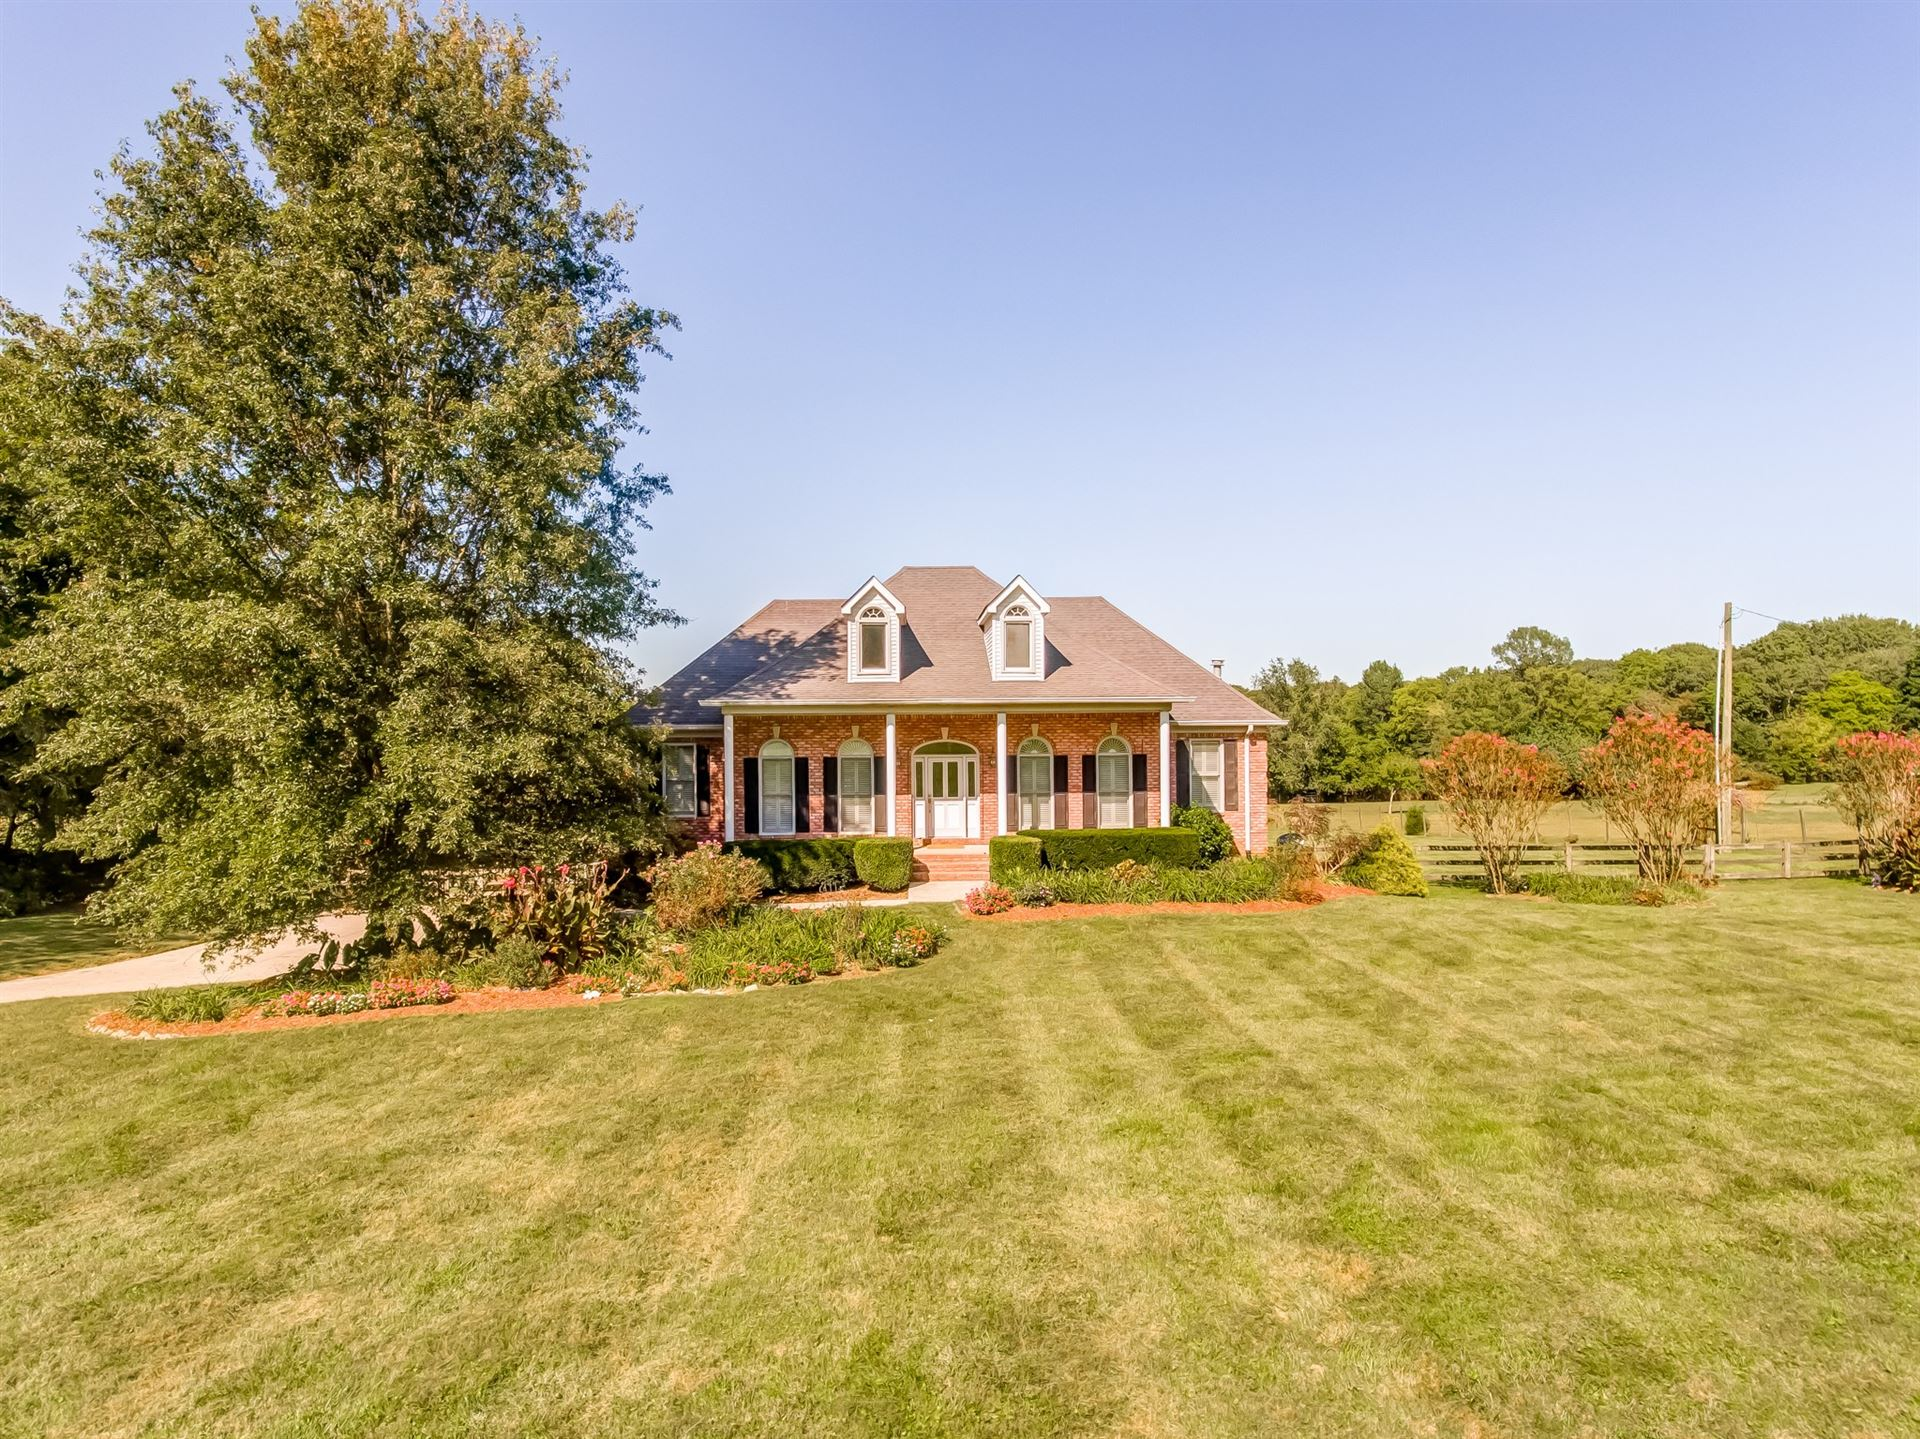 530 Natchez Bend Rd, Nashville, TN 37221 - MLS#: 2184211